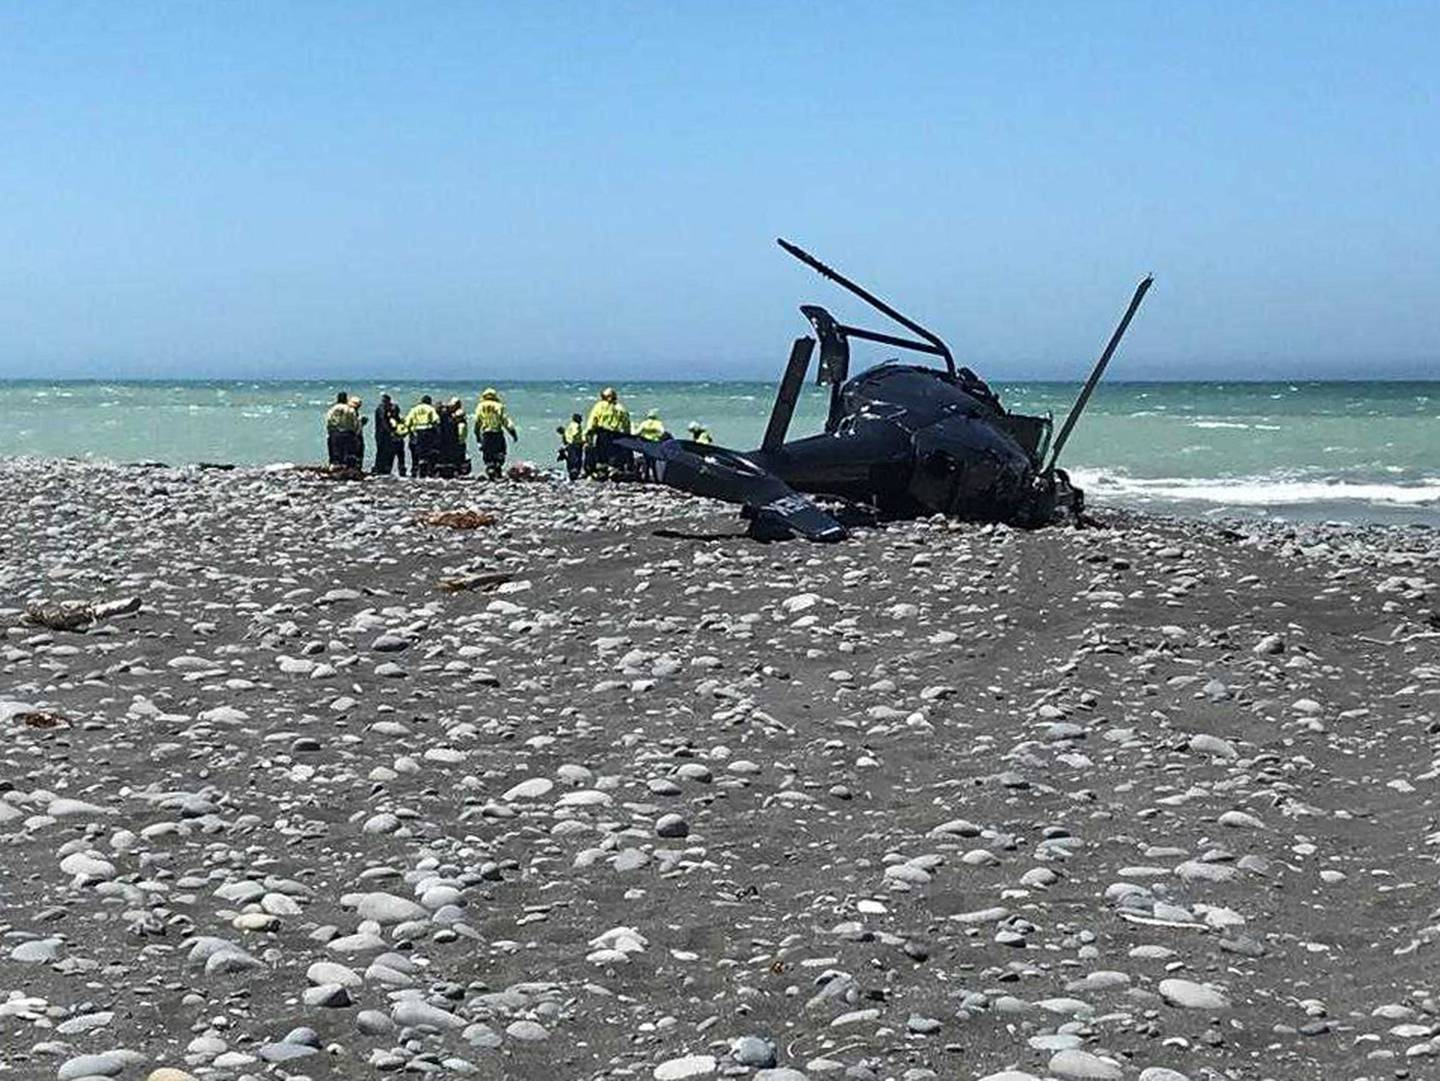 Two people were killed when the Airbus EC120 helicopter crashed onto the beach at Clarence, north...